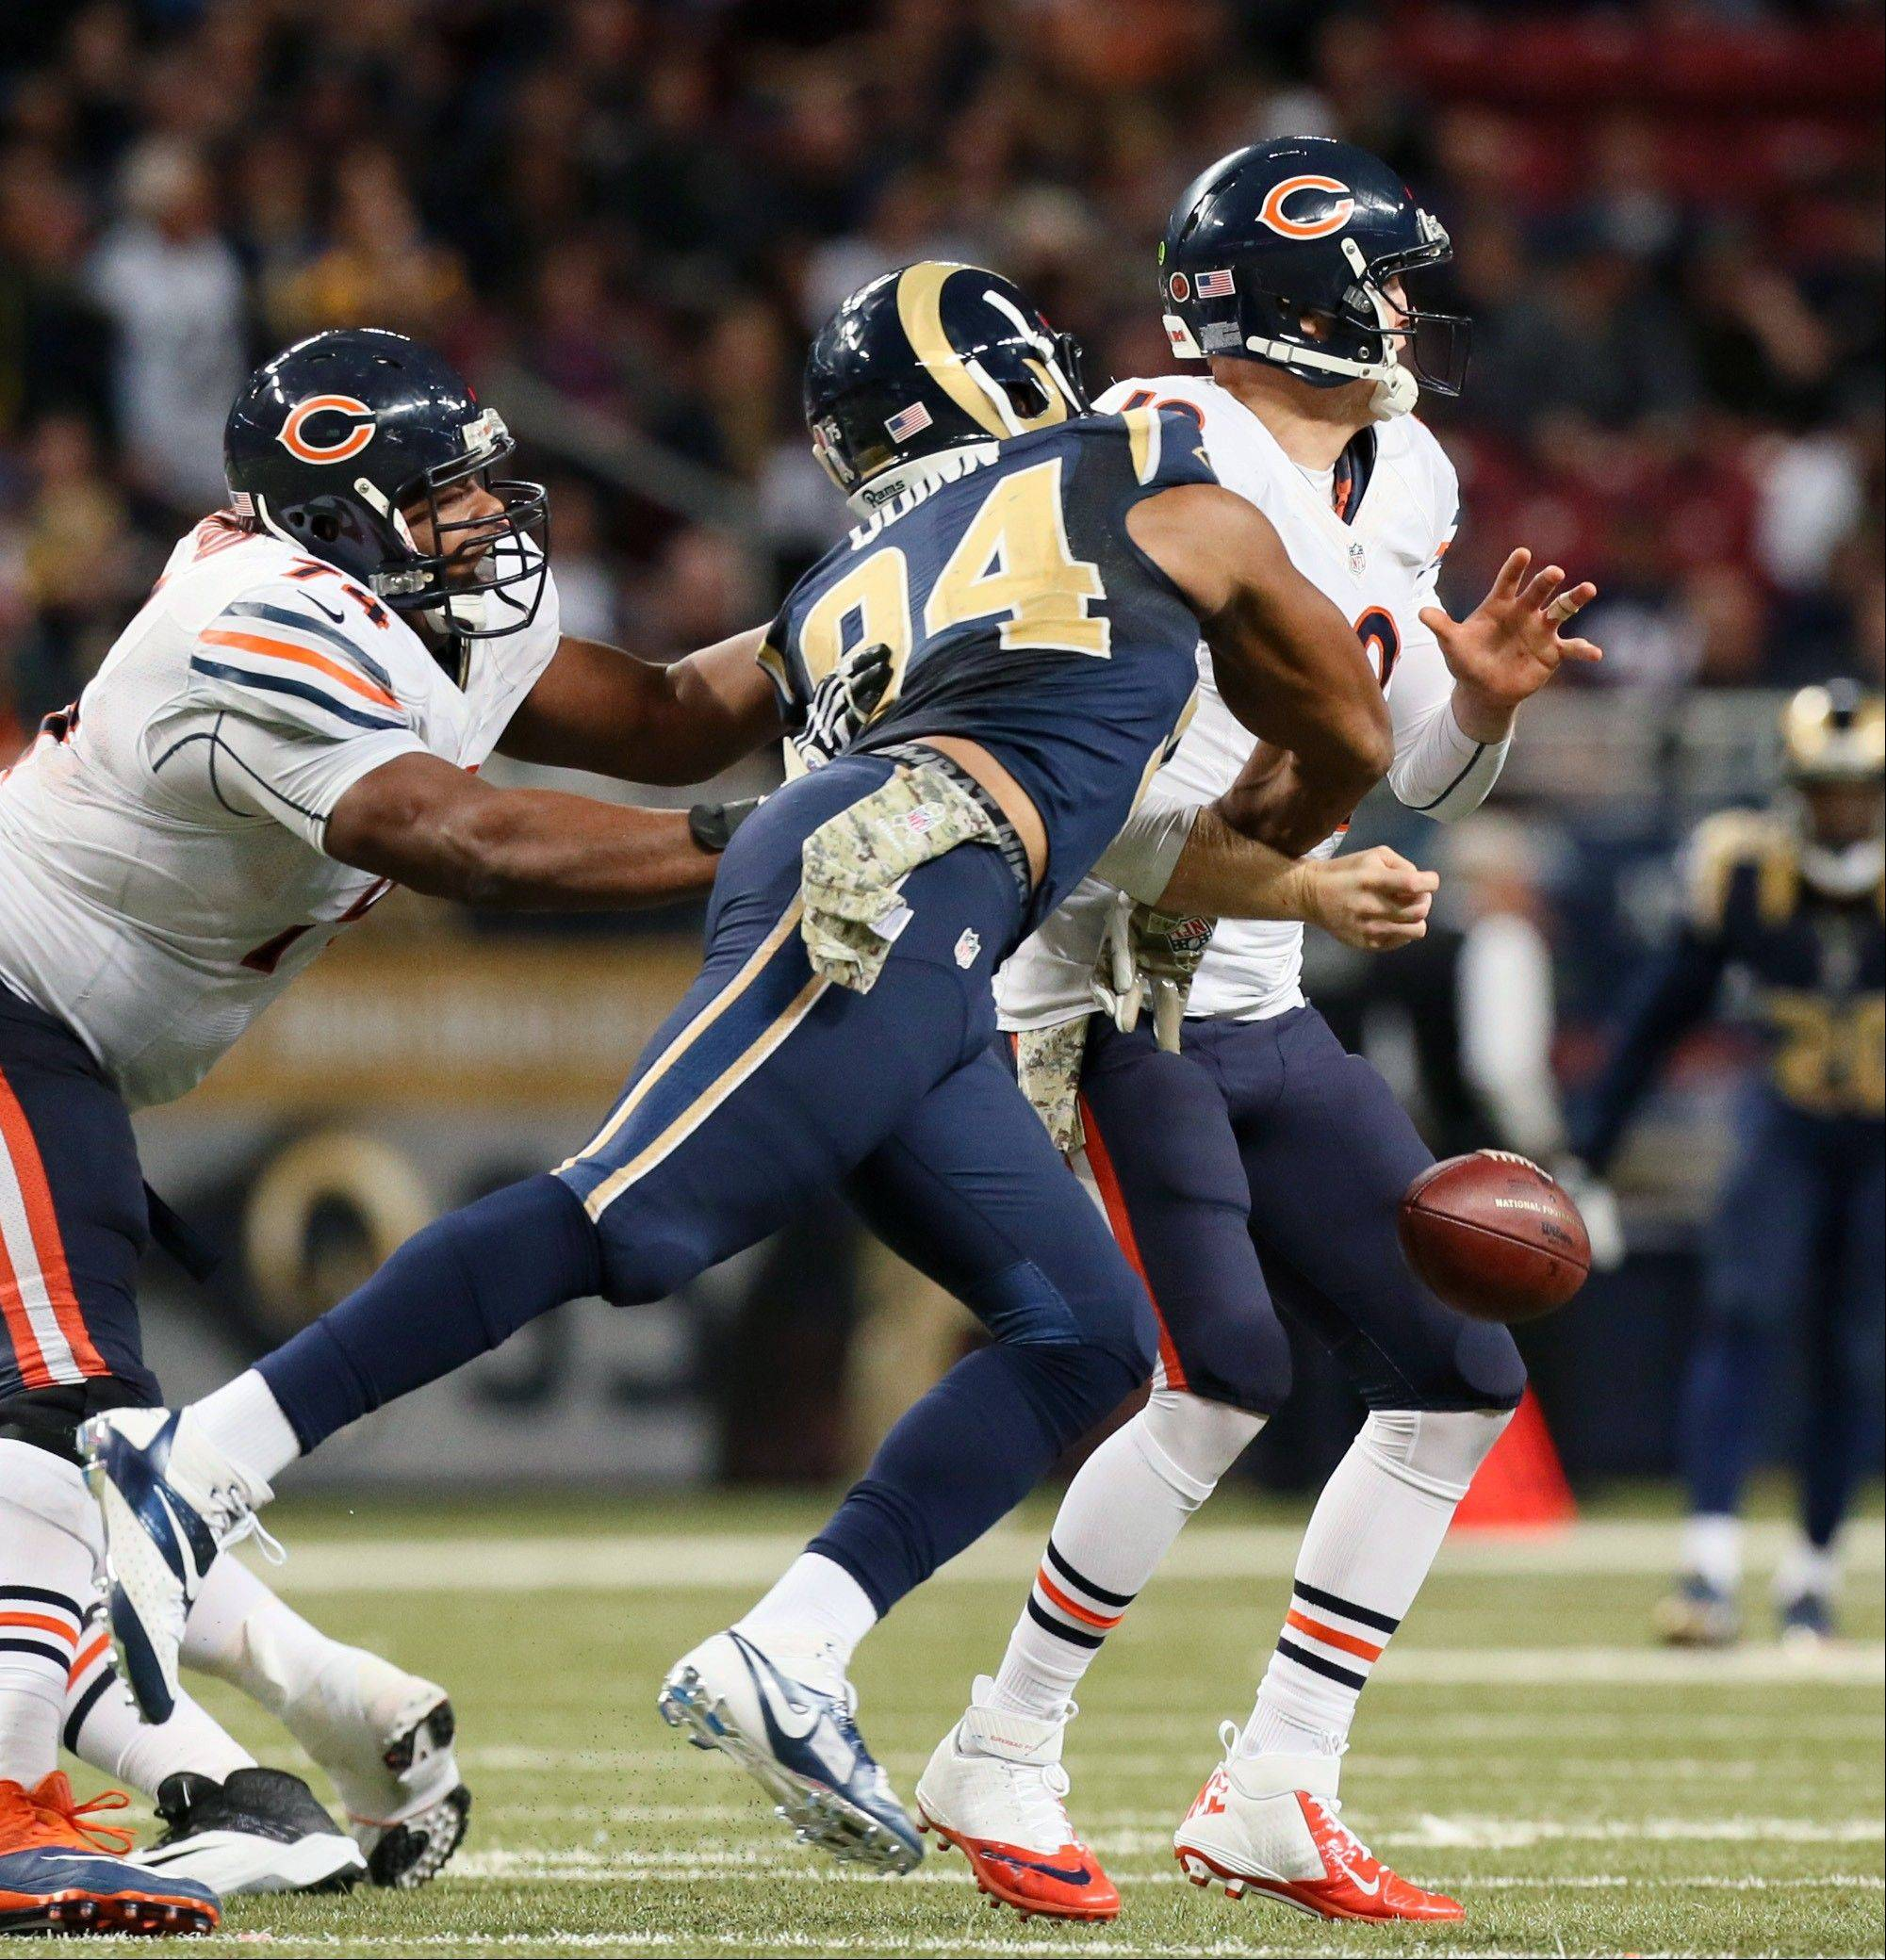 St. Louis Rams defensive end Robert Quinn beats Chicago Bears Jermon Bushrod for a sack on Bears quarterback Josh McCown and Quinn forces a fumble during the second half of an NFL football game on Sunday, Nov. 24, 2013, in St. Louis.